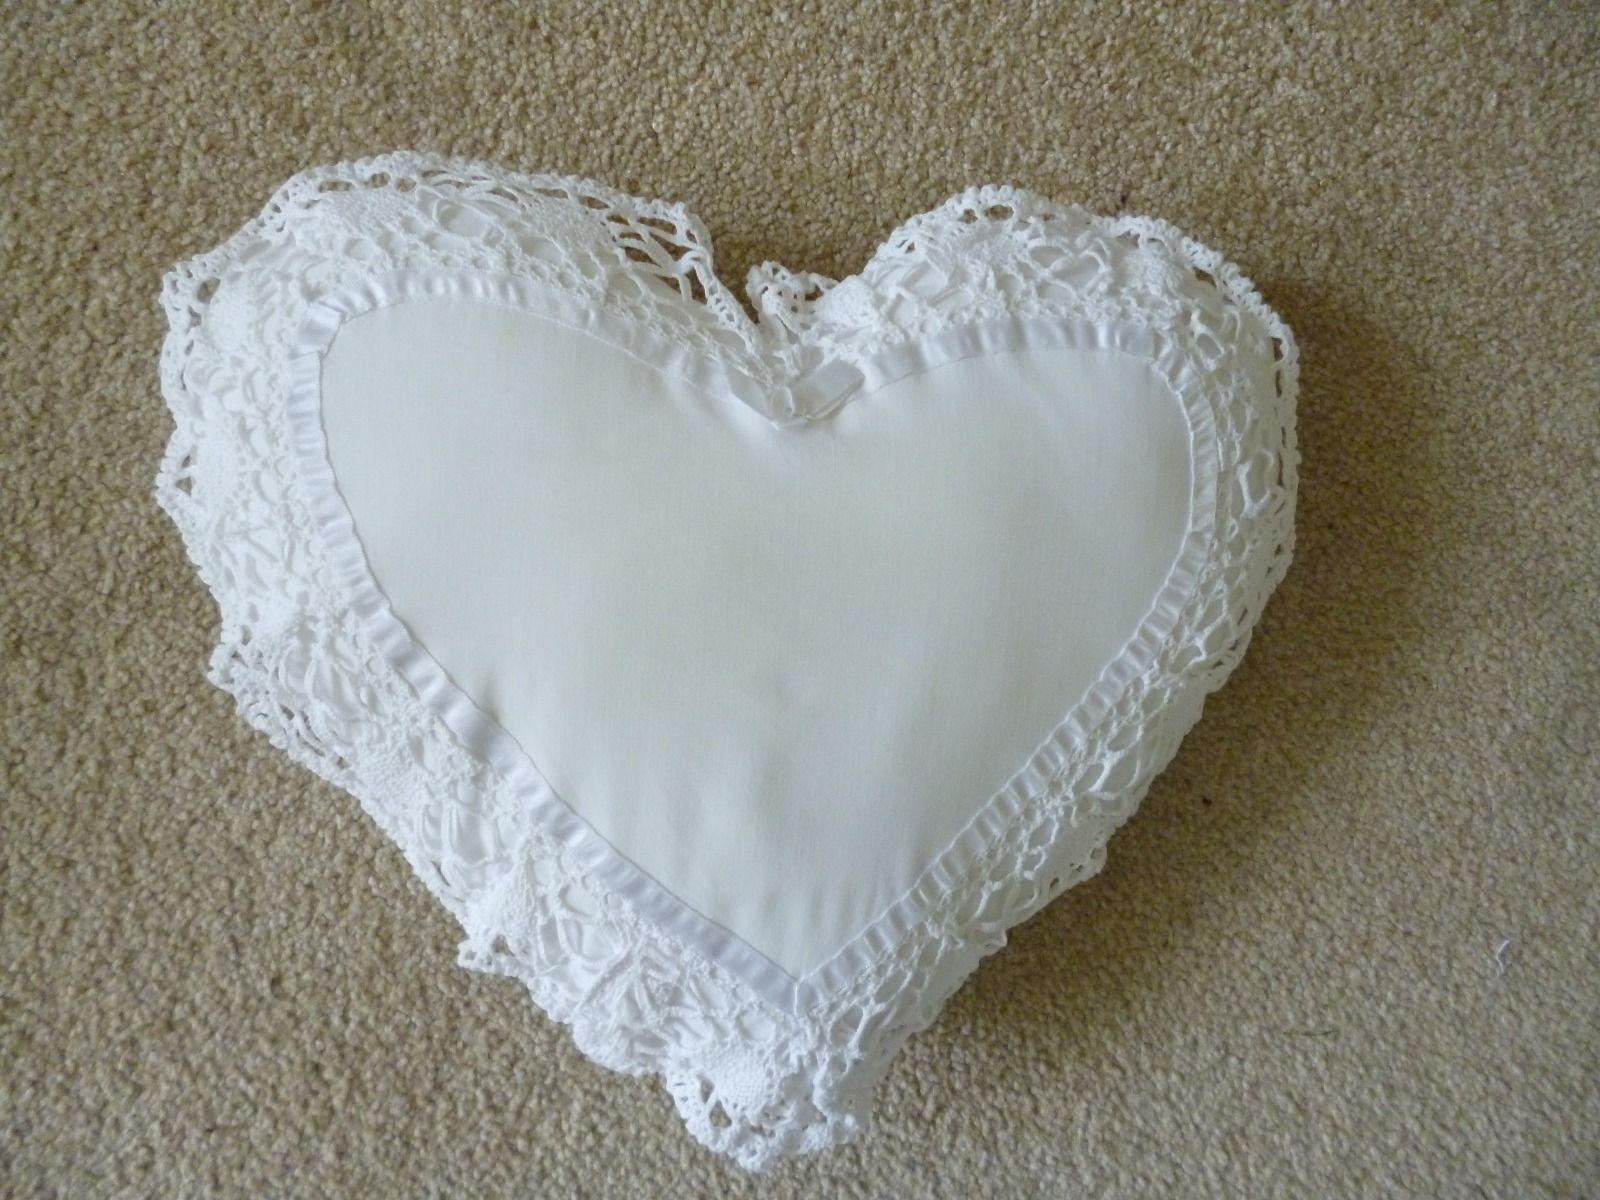 Stupendous Vintage Shabby Chic Style White Heart Cushion Ebay Home Interior And Landscaping Ponolsignezvosmurscom